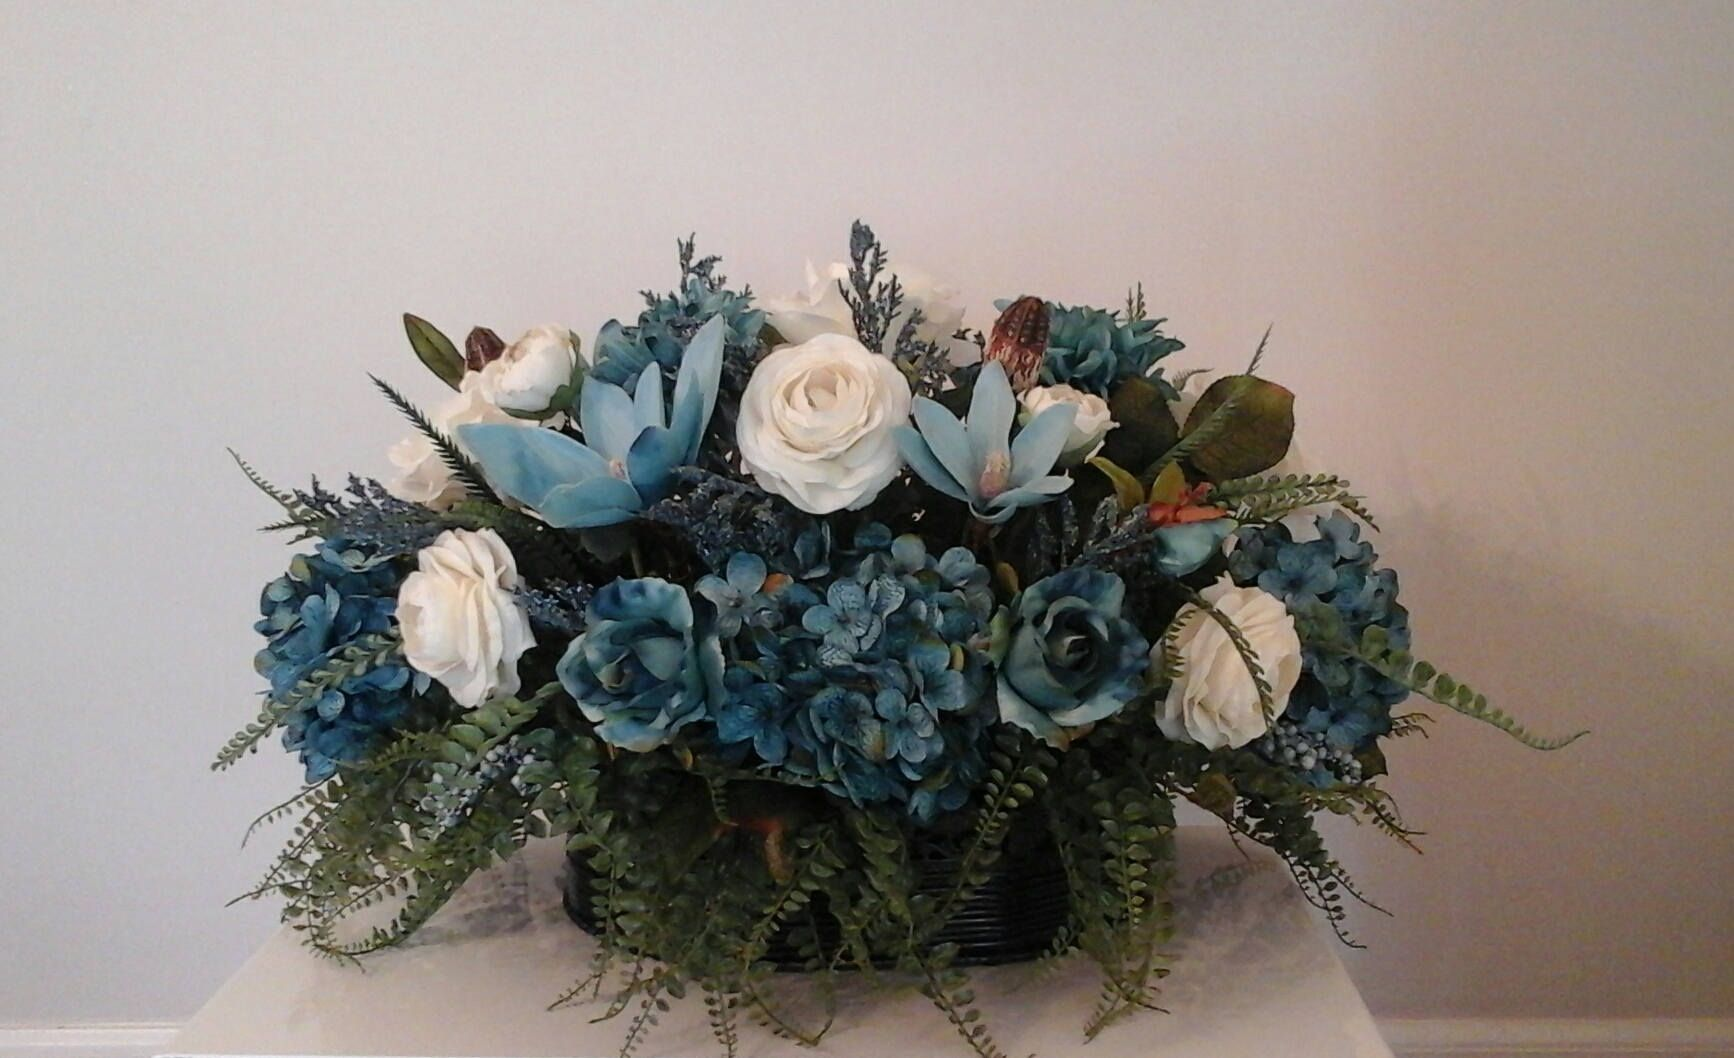 Table Floral Arrangement Floral Centerpiece Shipping Included Elegant Sofa Table Wet Bar Wall Niche Floral Arrangement Custom Made Floral Arrangements Floral Centerpieces Wet Bars